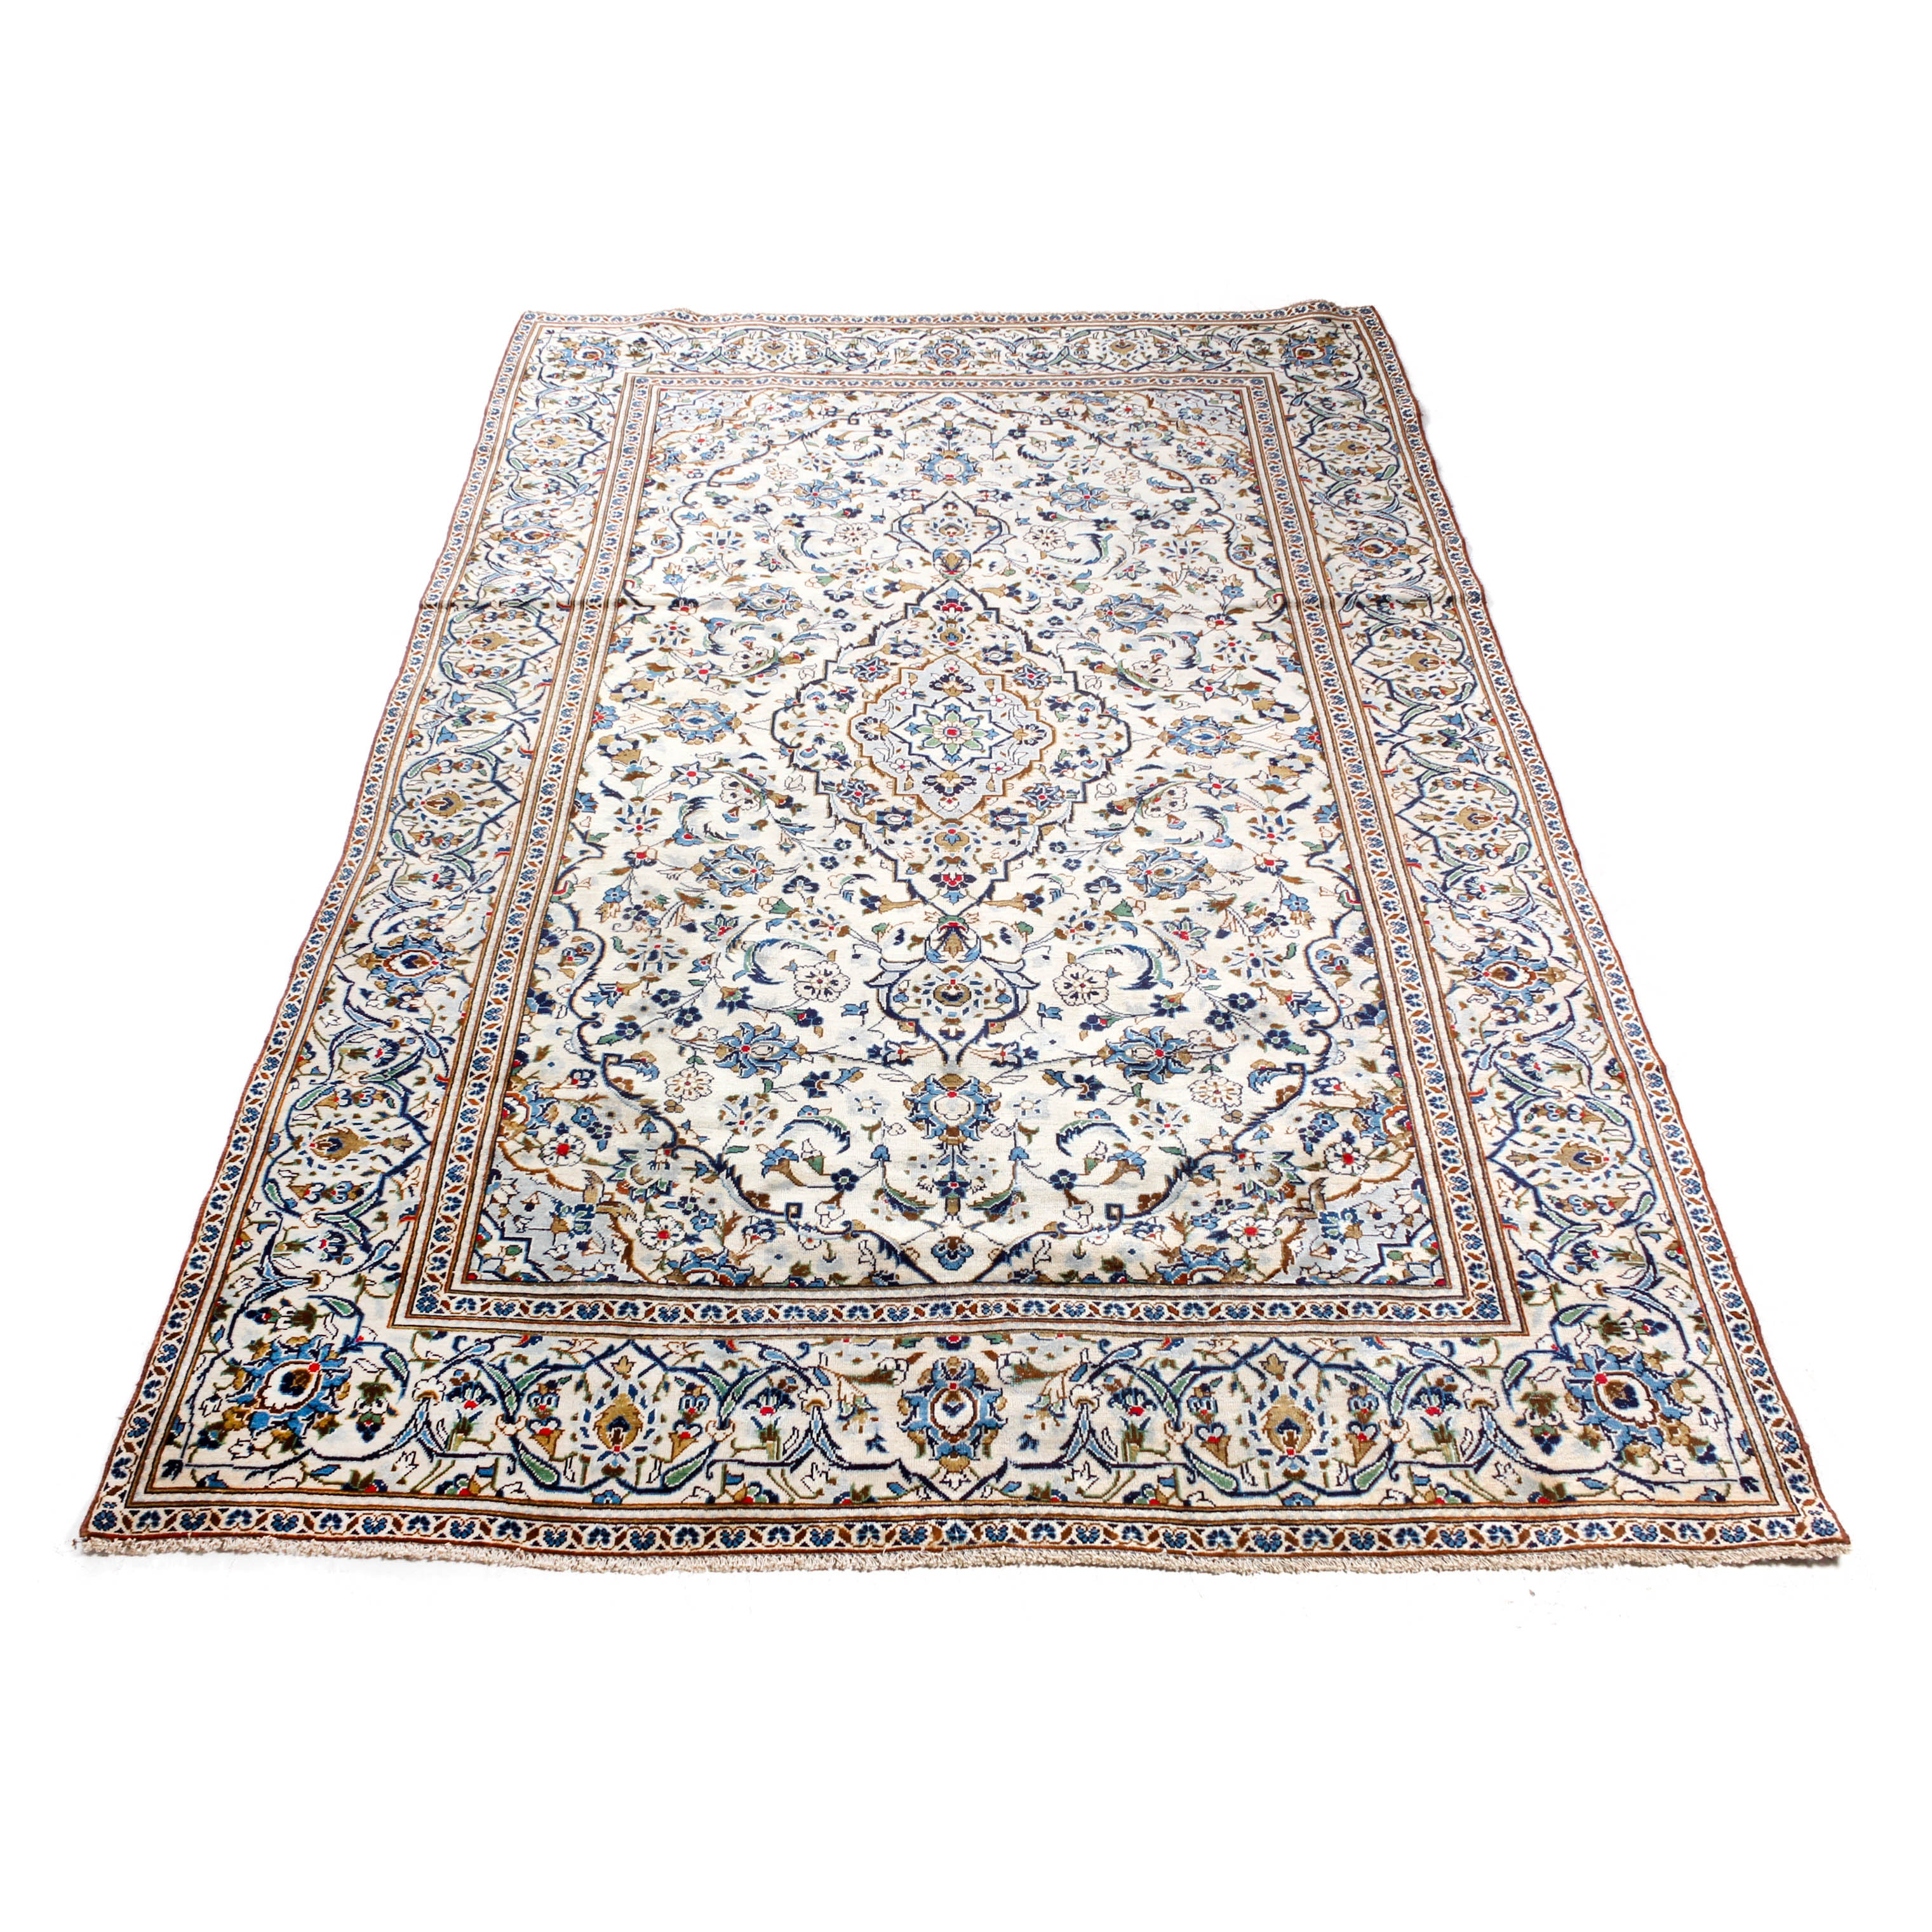 Vintage Hand-Knotted Persian Kashan Room Sized Rug